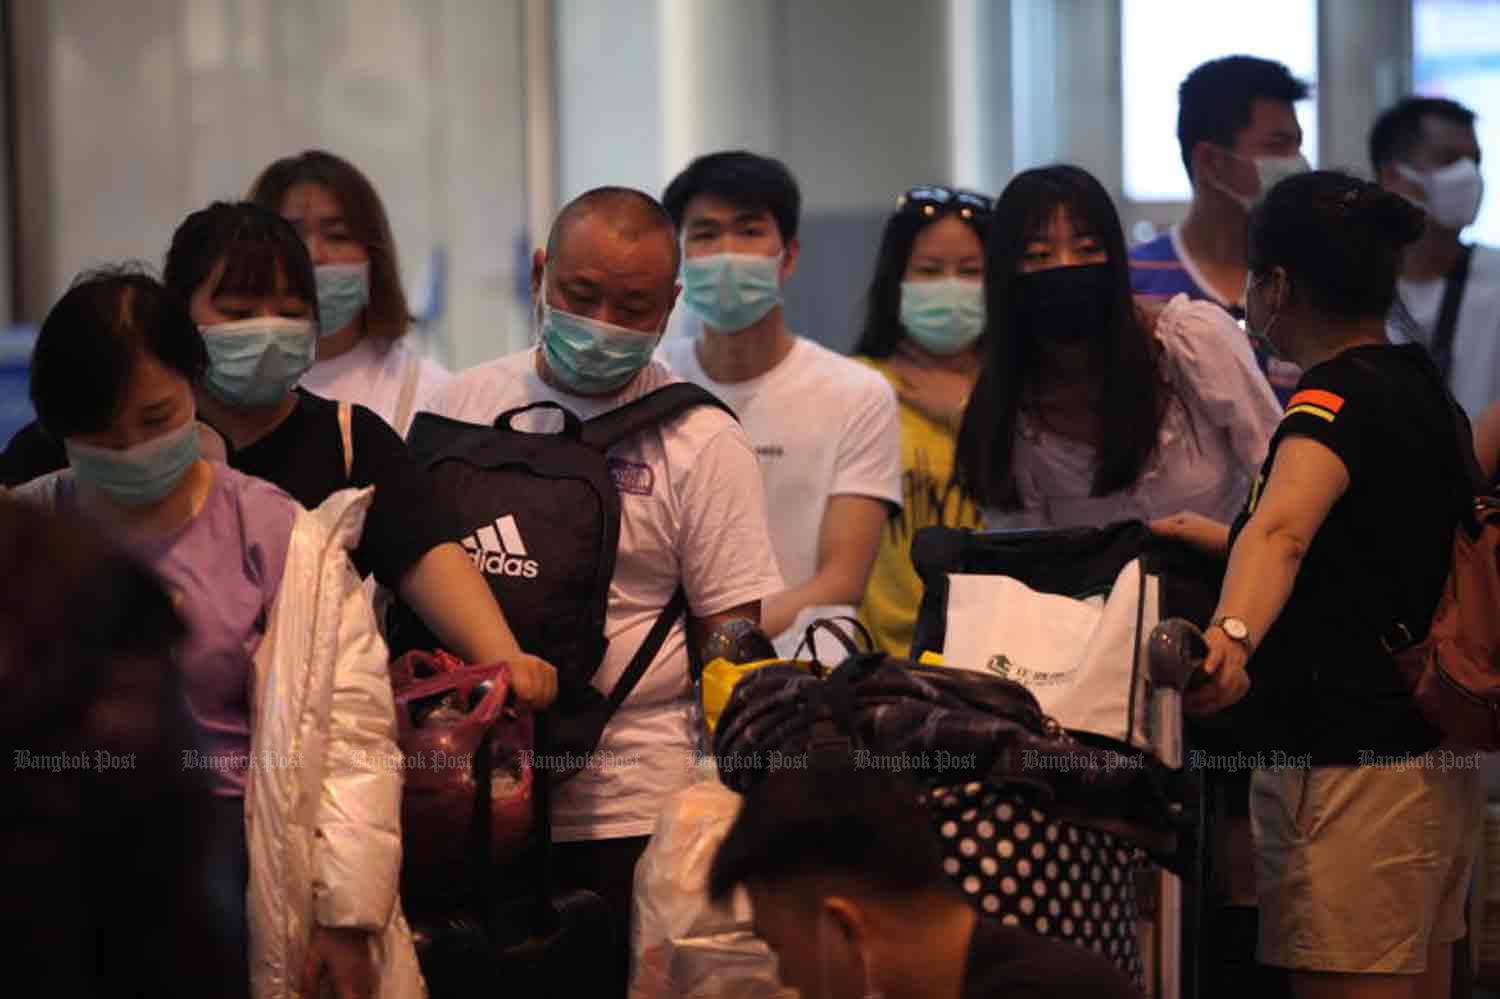 Tourists wear face masks at Don Mueang airport. Health officials are closely monitoring about 20,000 Chinese visitors here to celebrate Lunar New Year holiday, as the novel coronavirus from China continues to spread. (Photo by Apichart Jinakul)